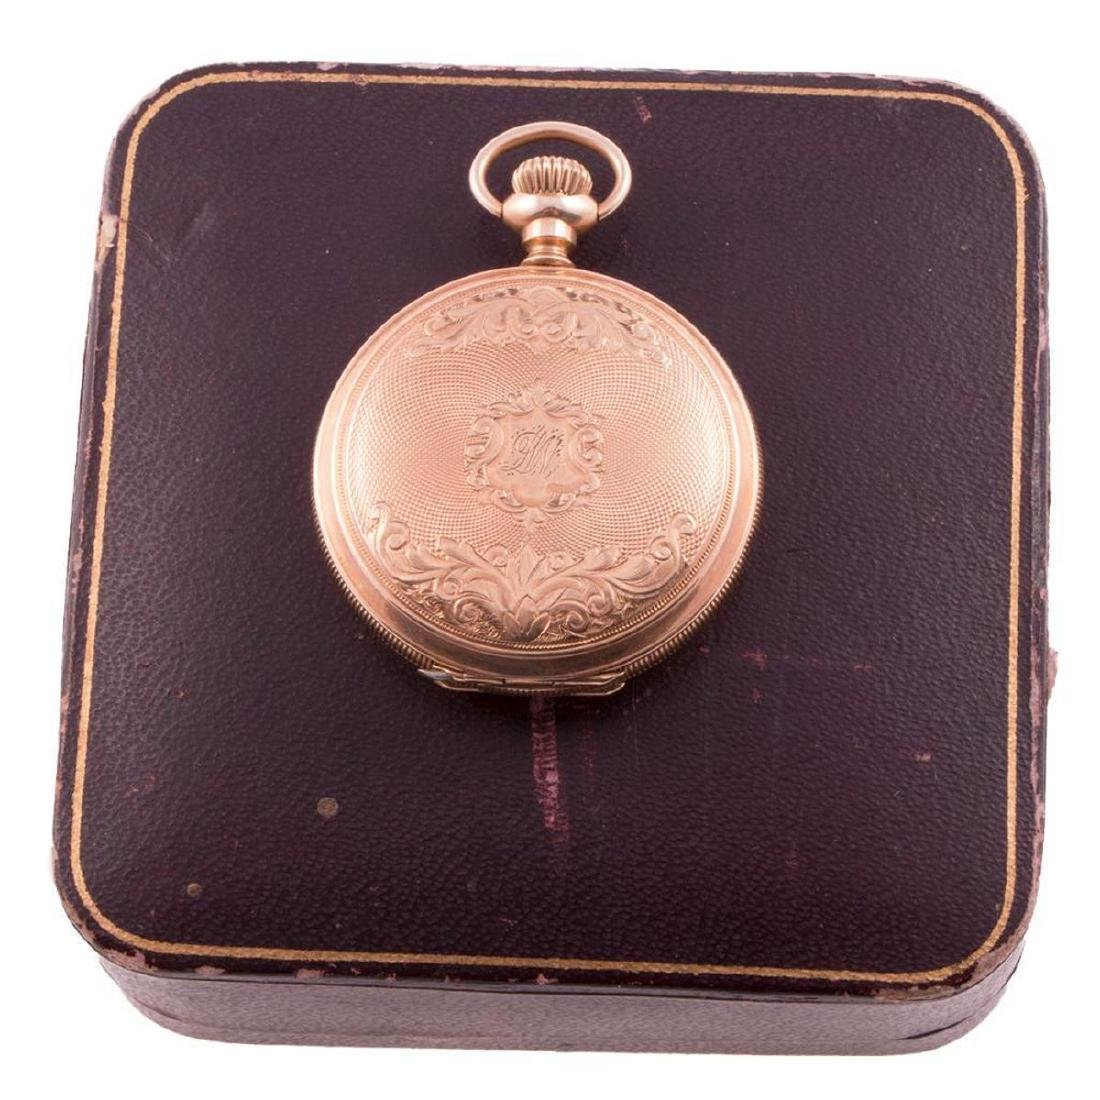 Waltham 14k gold hunting cased pocketwatch, with box